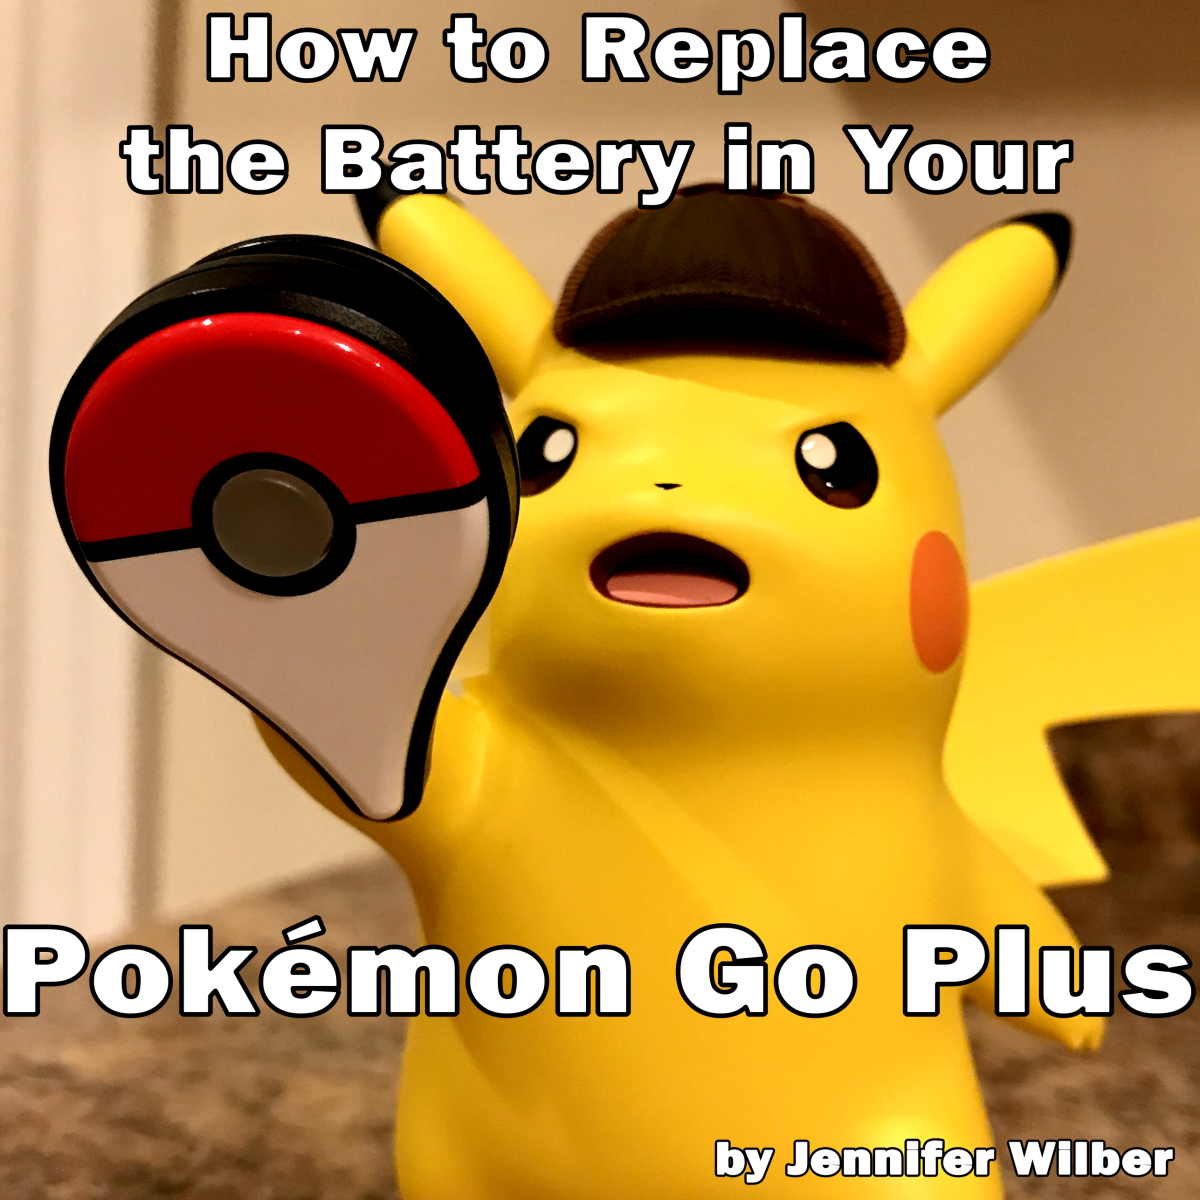 How to Replace the Battery in Your Pokémon Go Plus